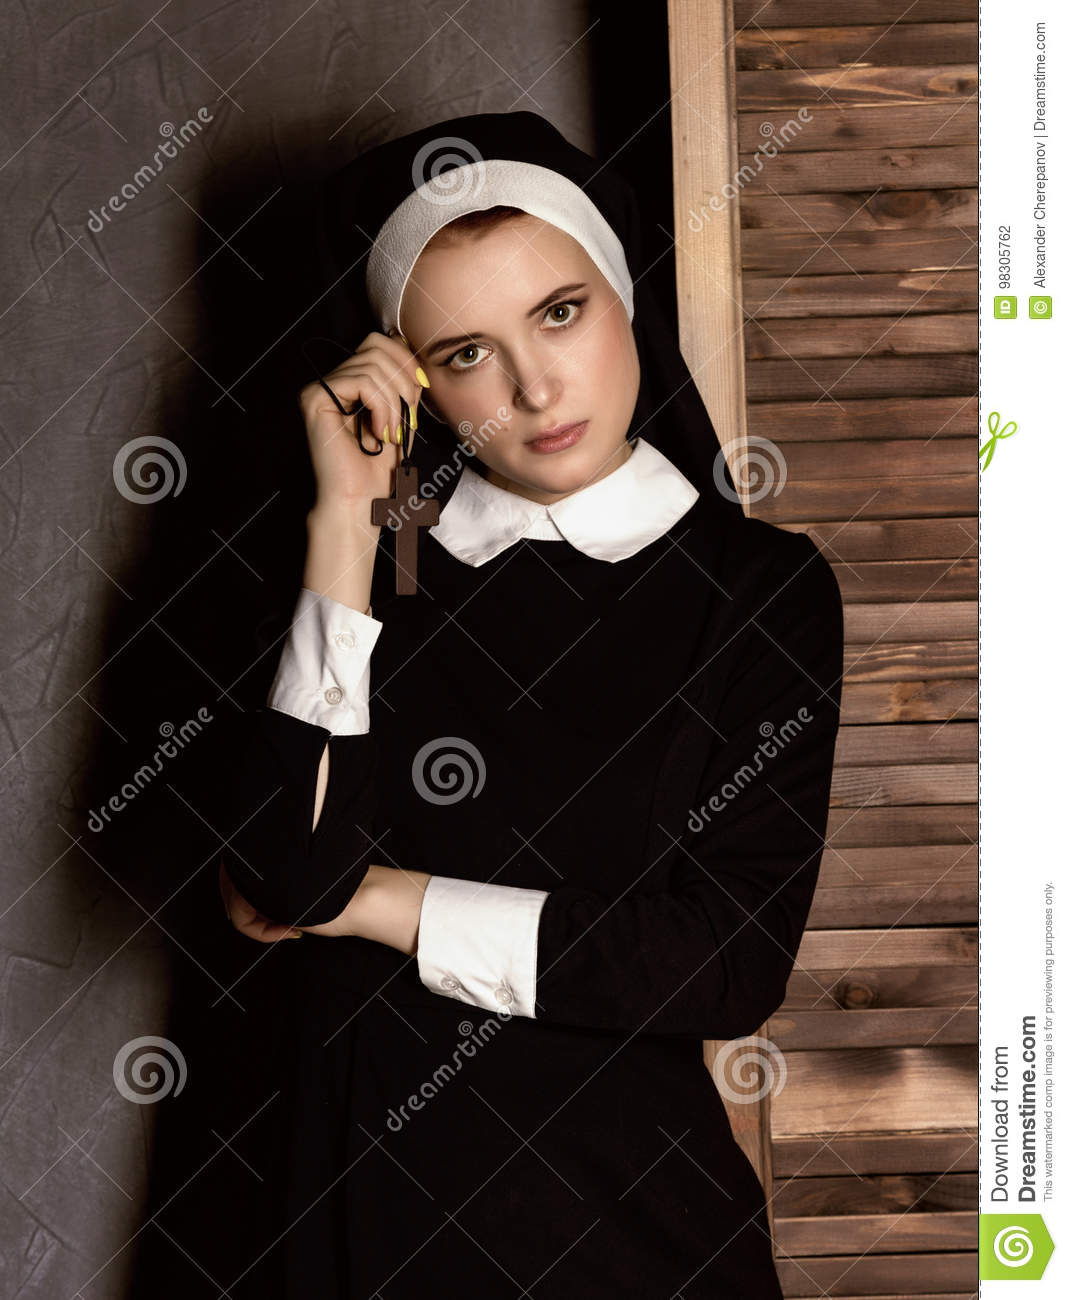 humble young beautiful nun in robes holding a cross on a grey